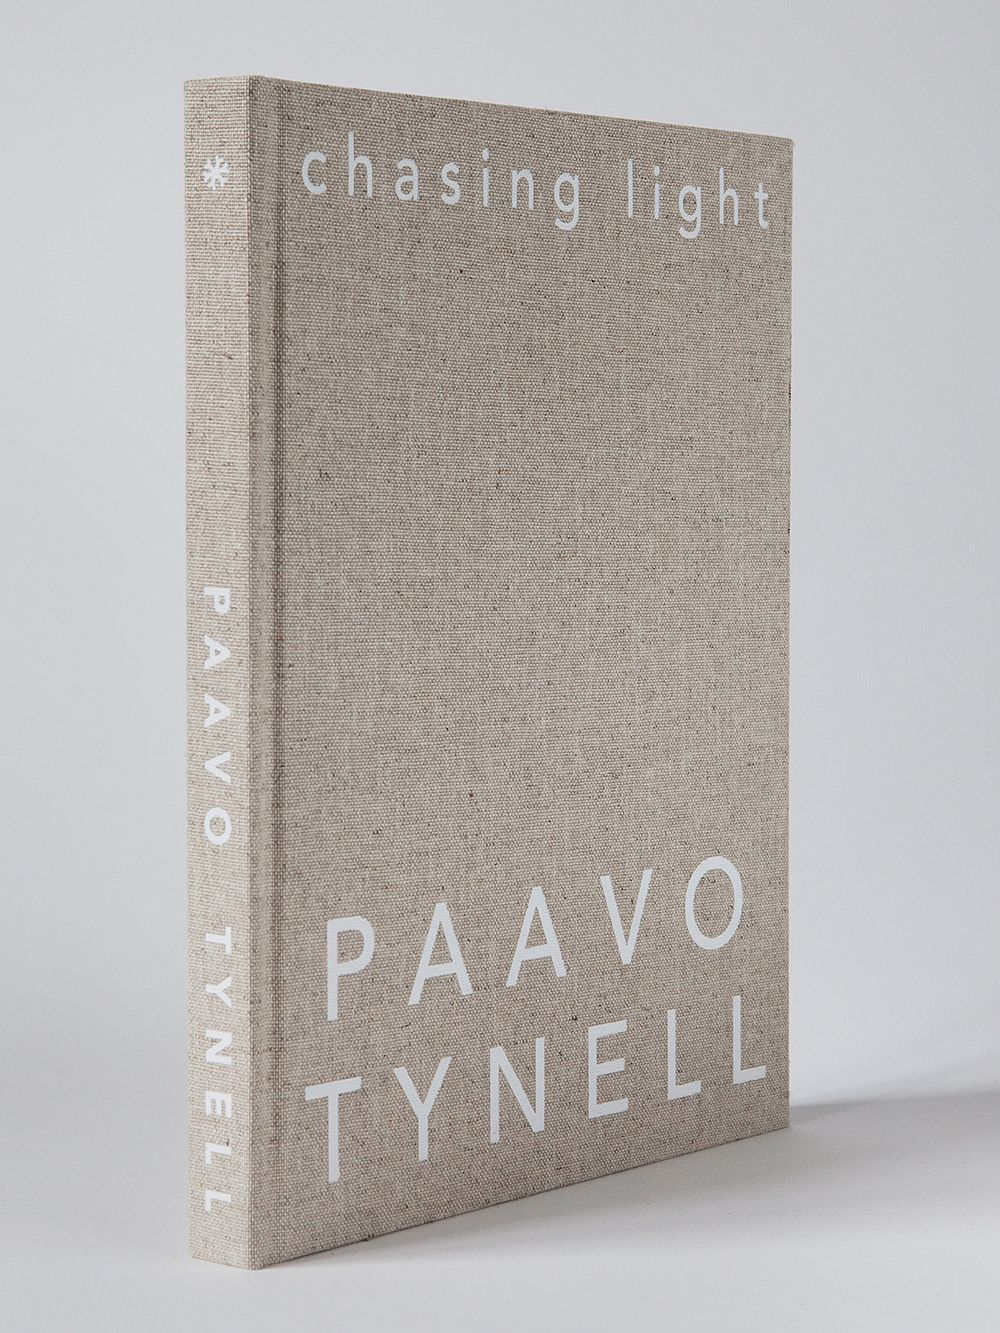 Chasing Light: The Archival Photographs and Drawings of Paavo Tynell